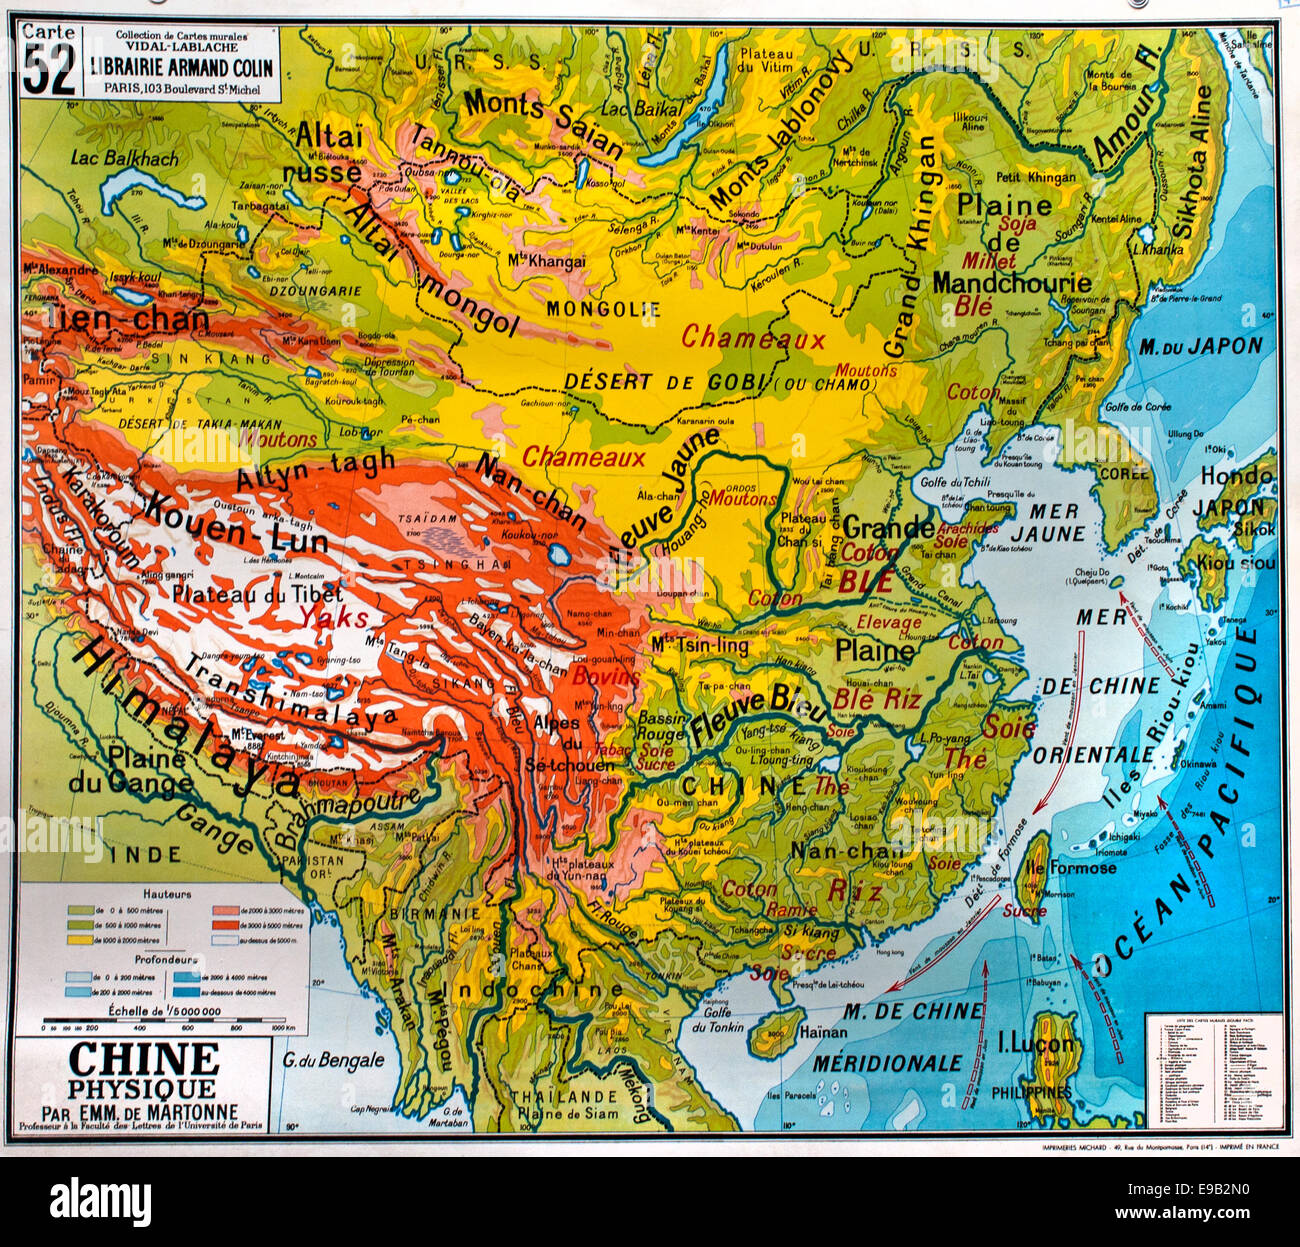 Old school world wall map china himalaya french cartography stock old school world wall map china himalaya french cartography gumiabroncs Image collections